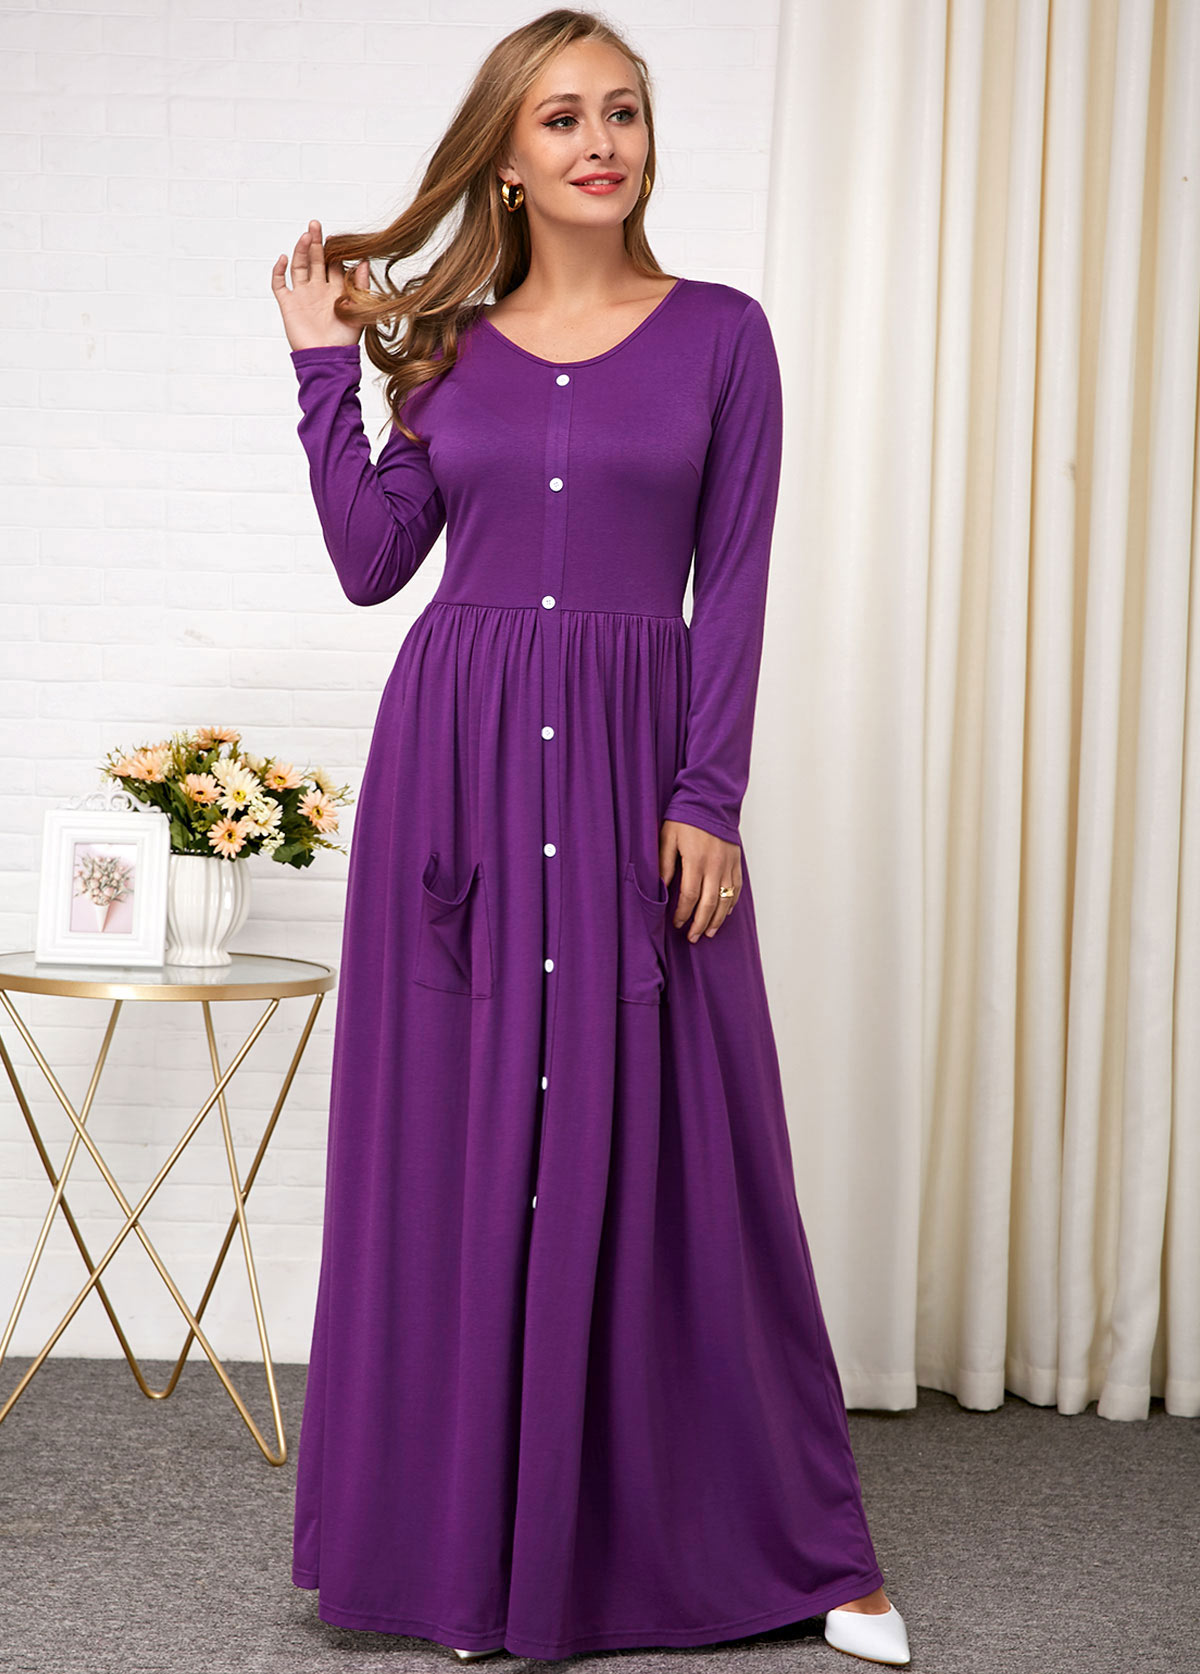 Button Detail Long Sleeve Purple Round Neck Dress